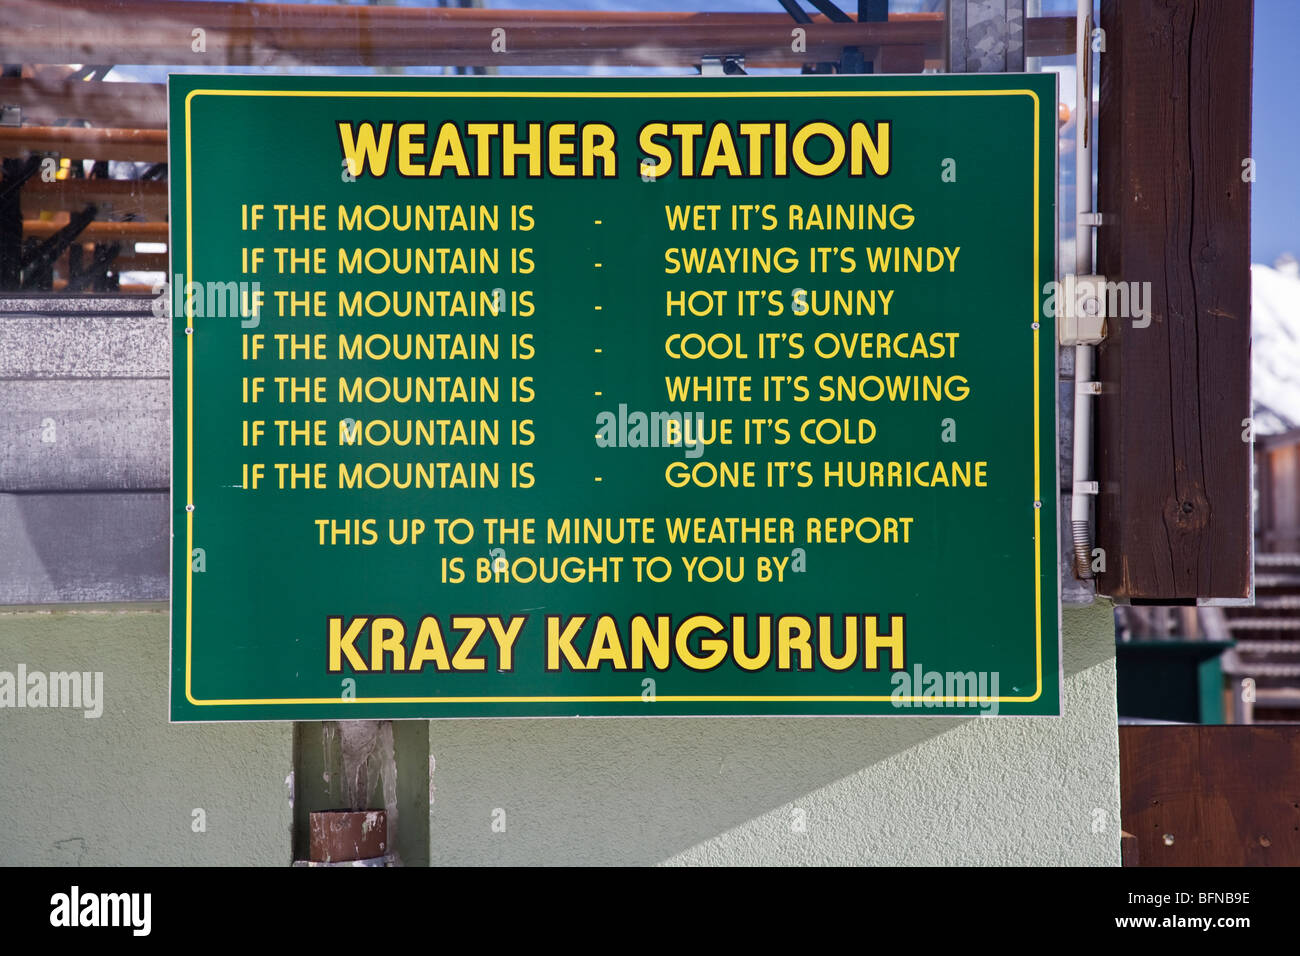 Humerous weather report sign outside the famous Krazy Kanguruh bar - Stock Image